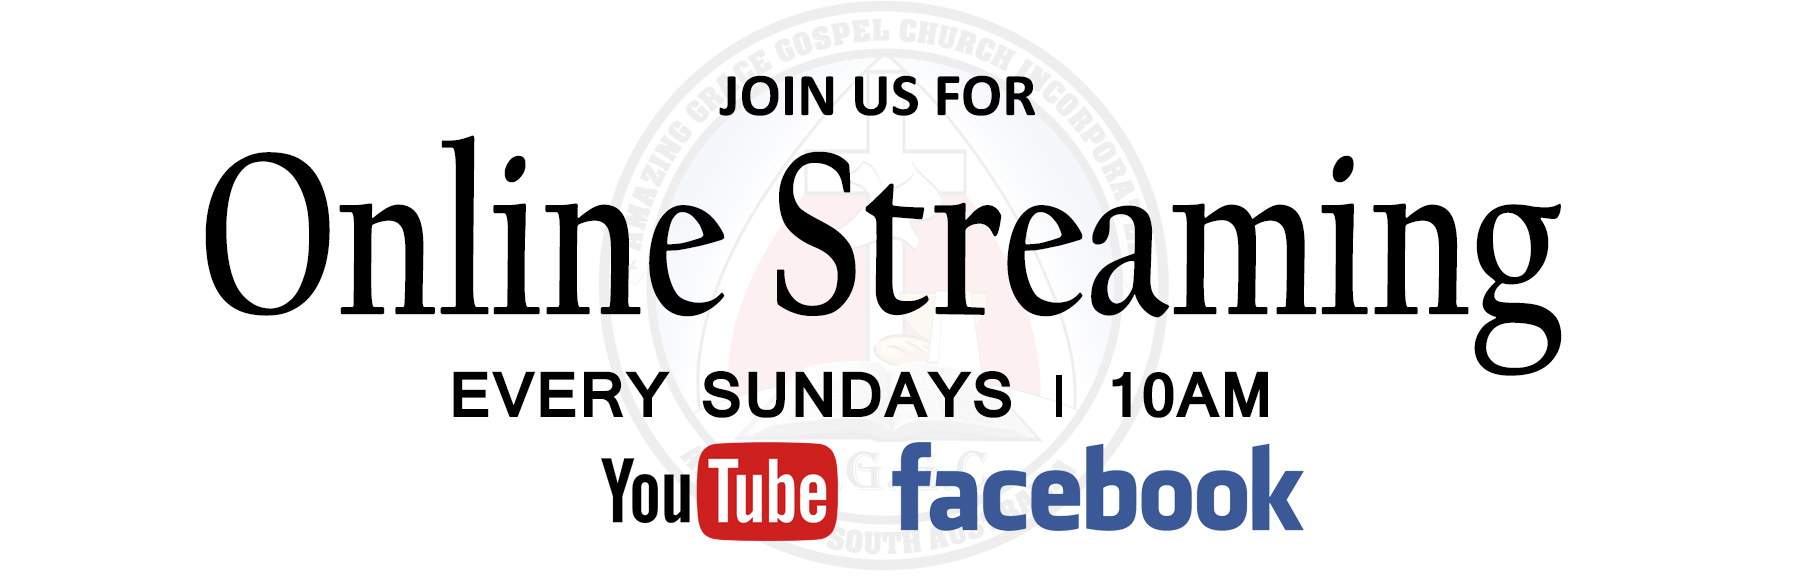 Streaming live Church Service on Youtube & Facebook